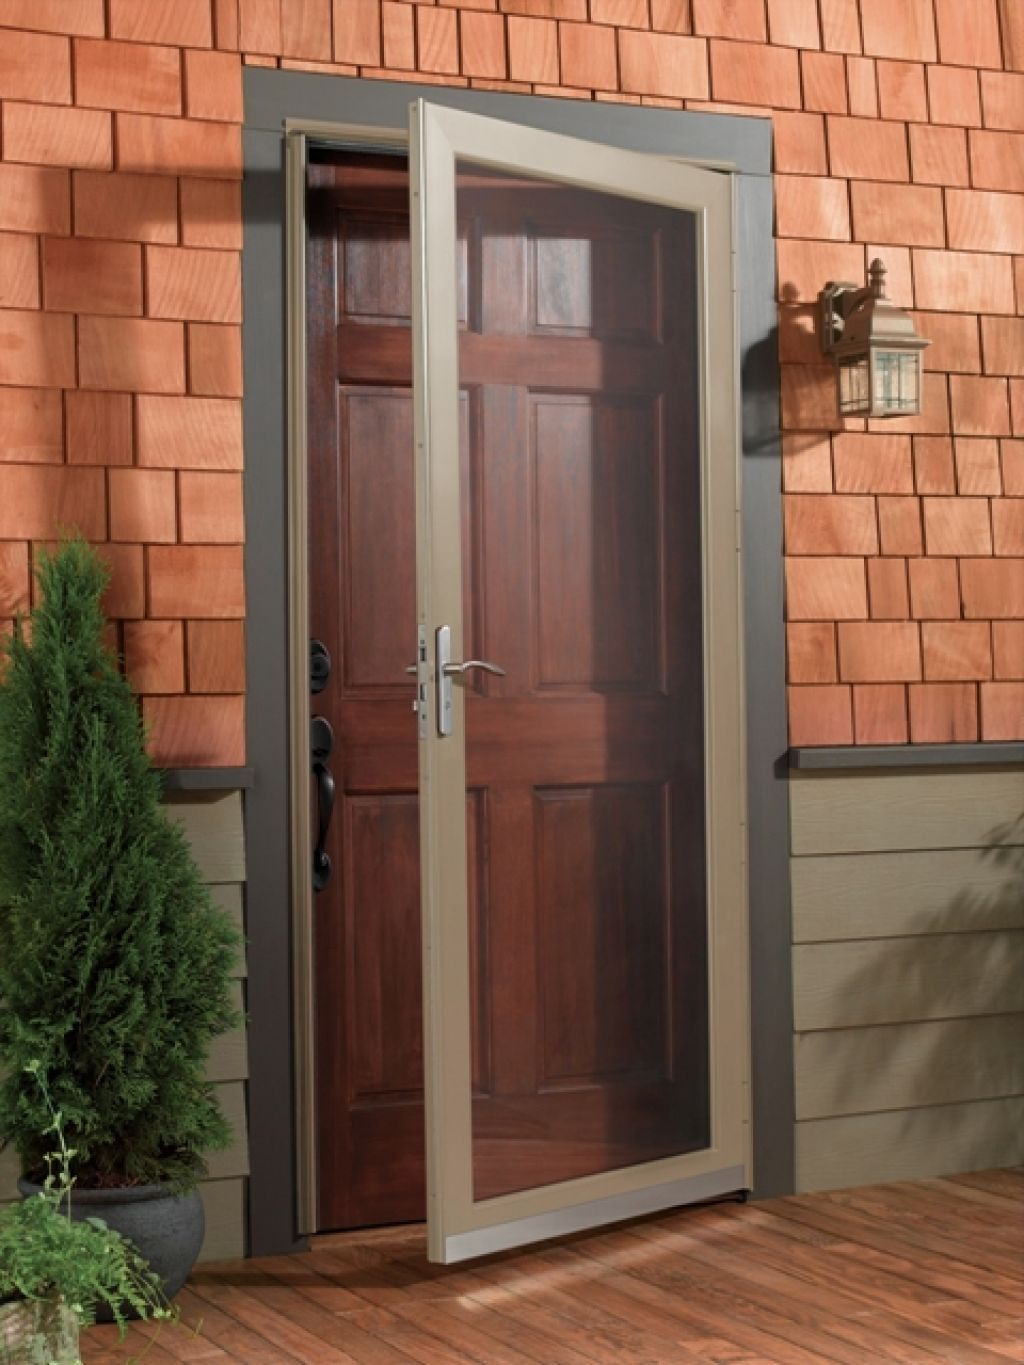 Common Vintage Design For Storm Door With Clear Screen And Using ...